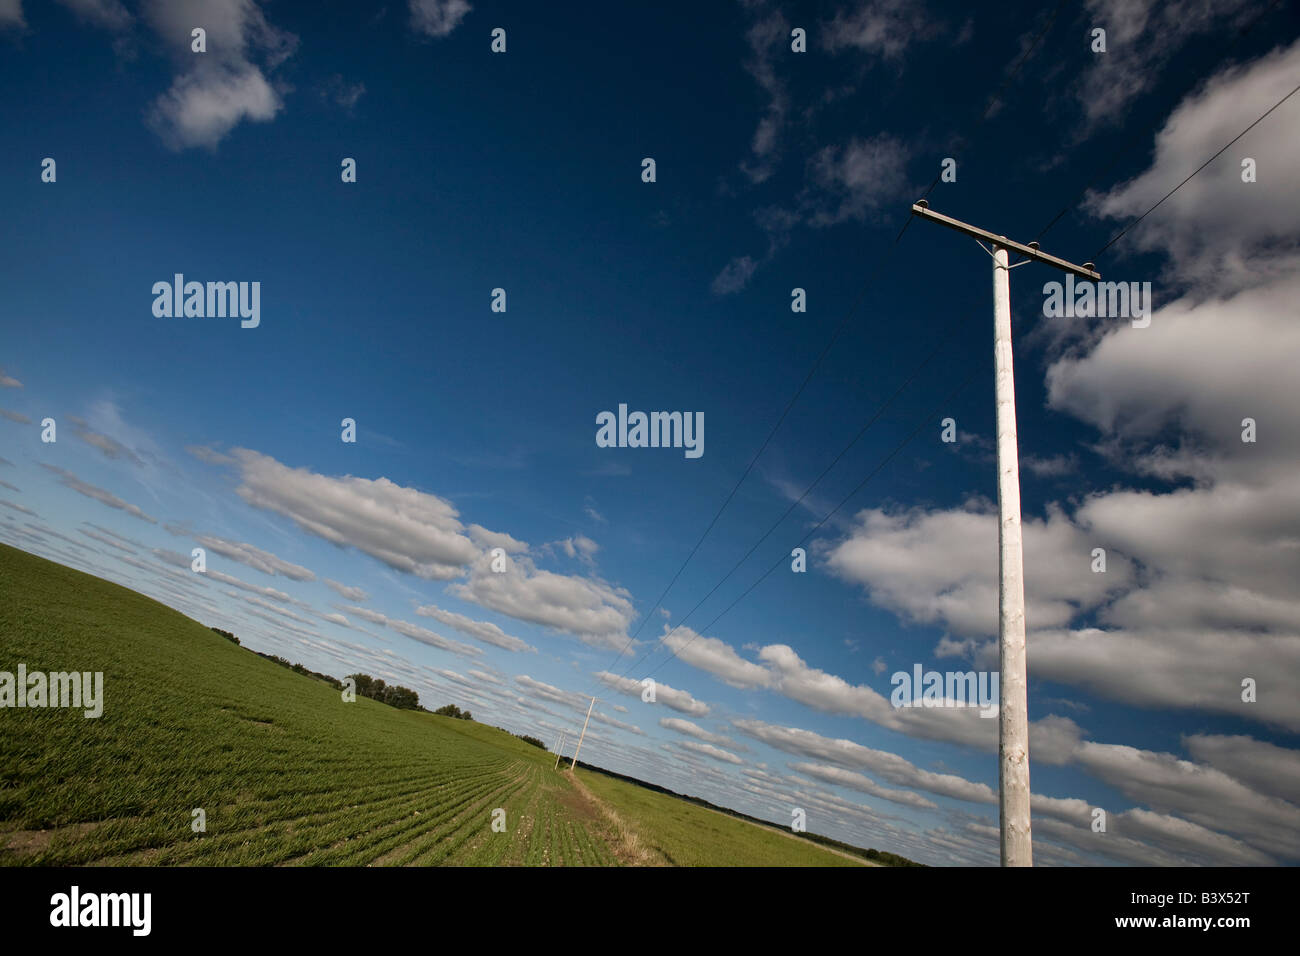 Power lines in a prairie field - Stock Image